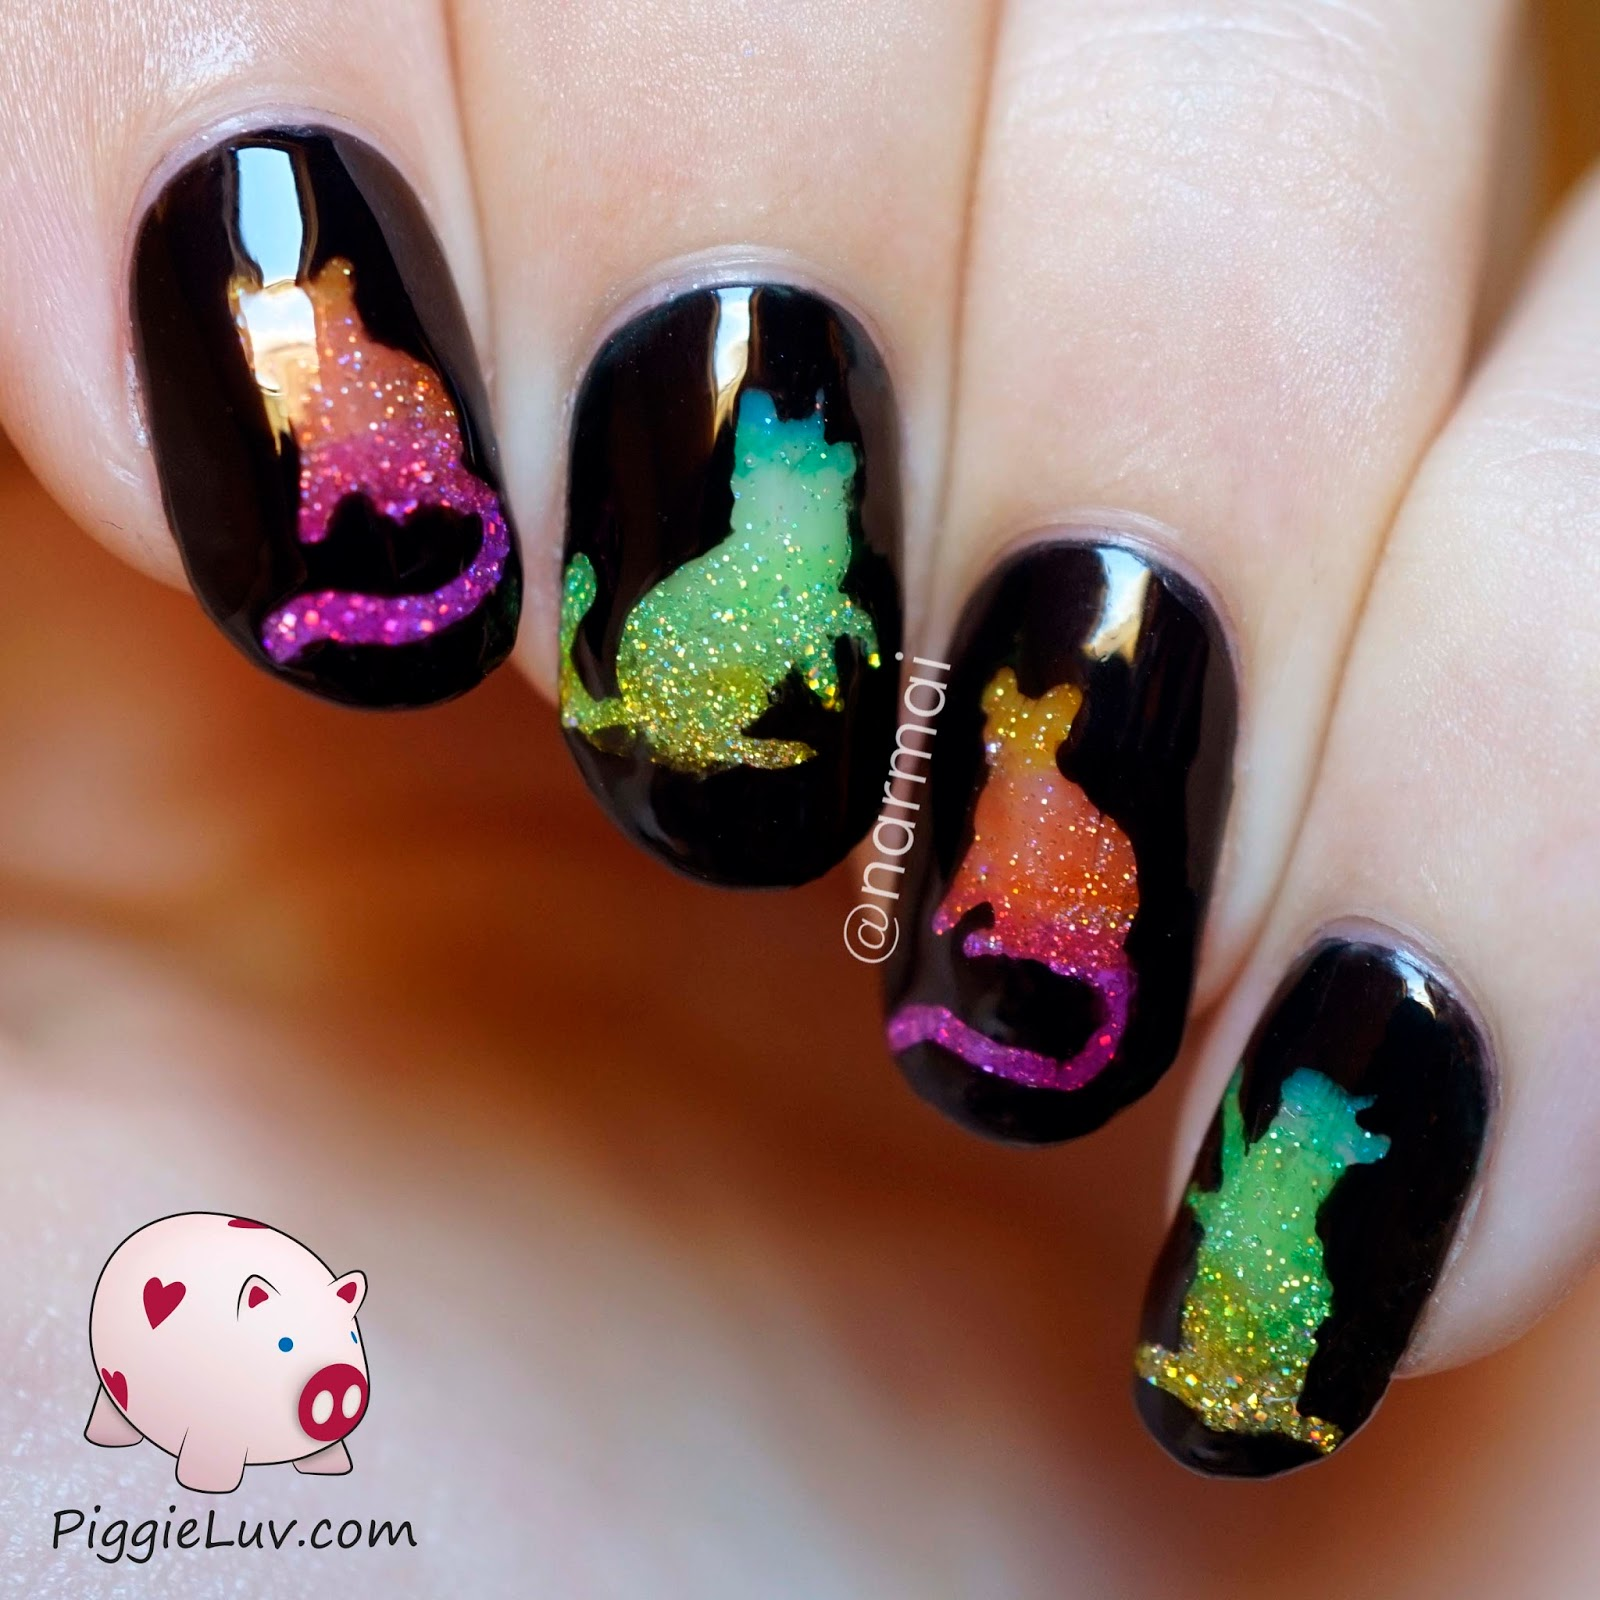 PiggieLuv: Glitter rainbow cats nail art with OPI Color Paints